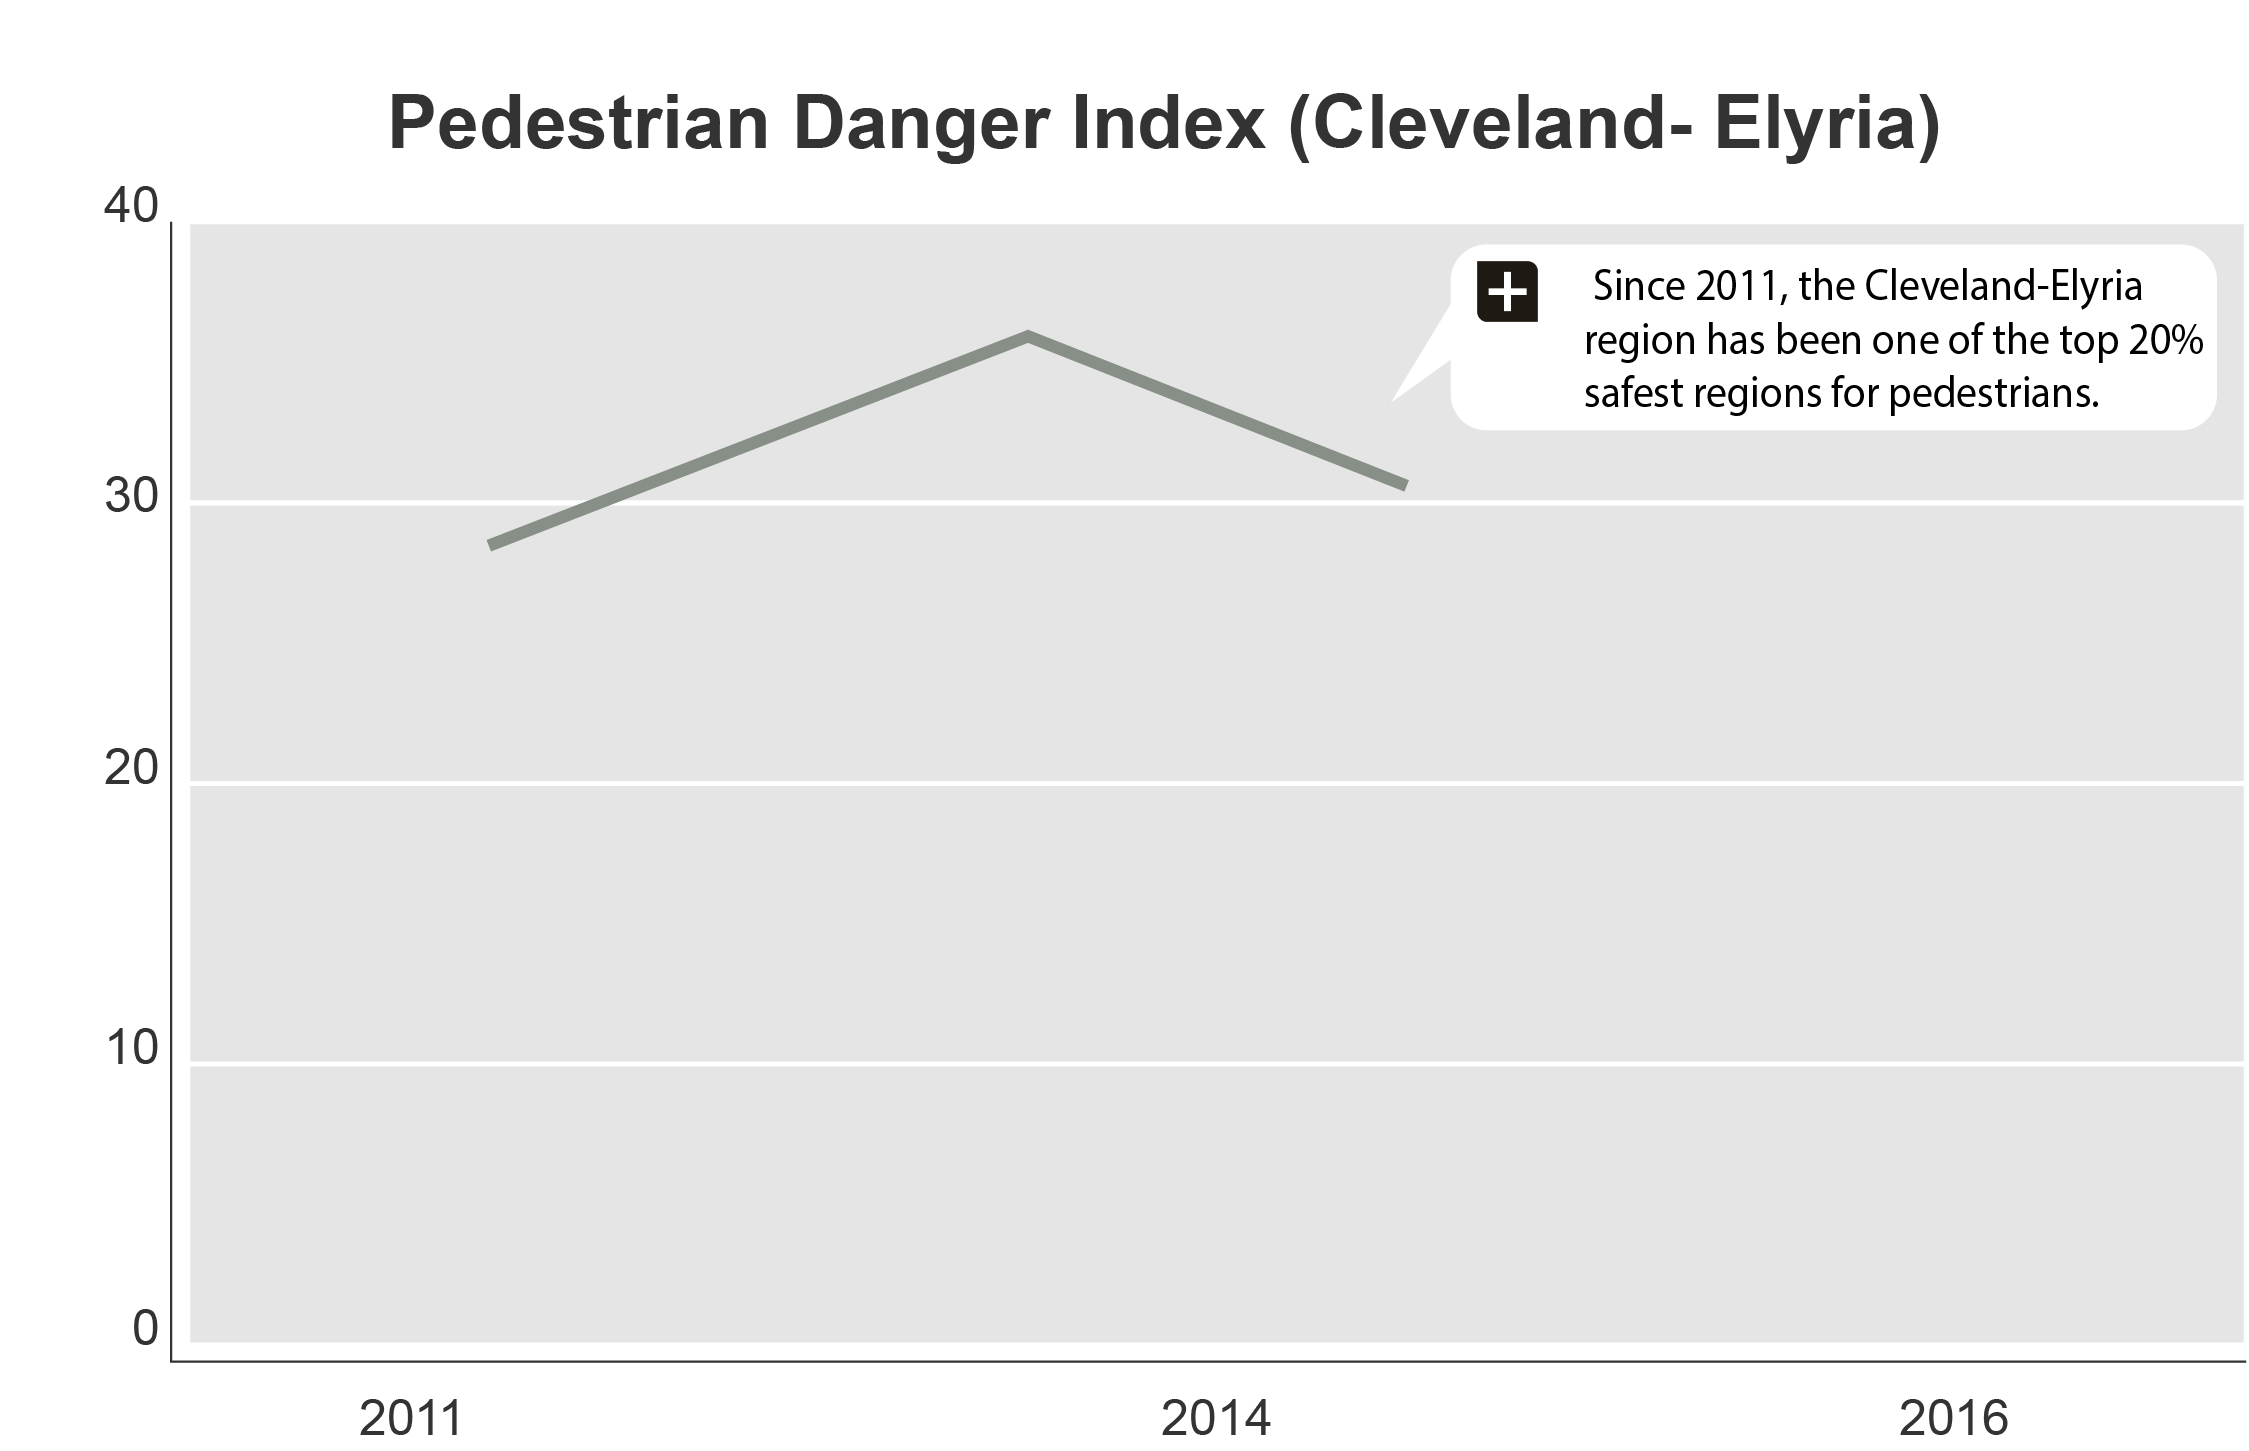 Built_PED_Danger_Index_(2.23.17).jpg